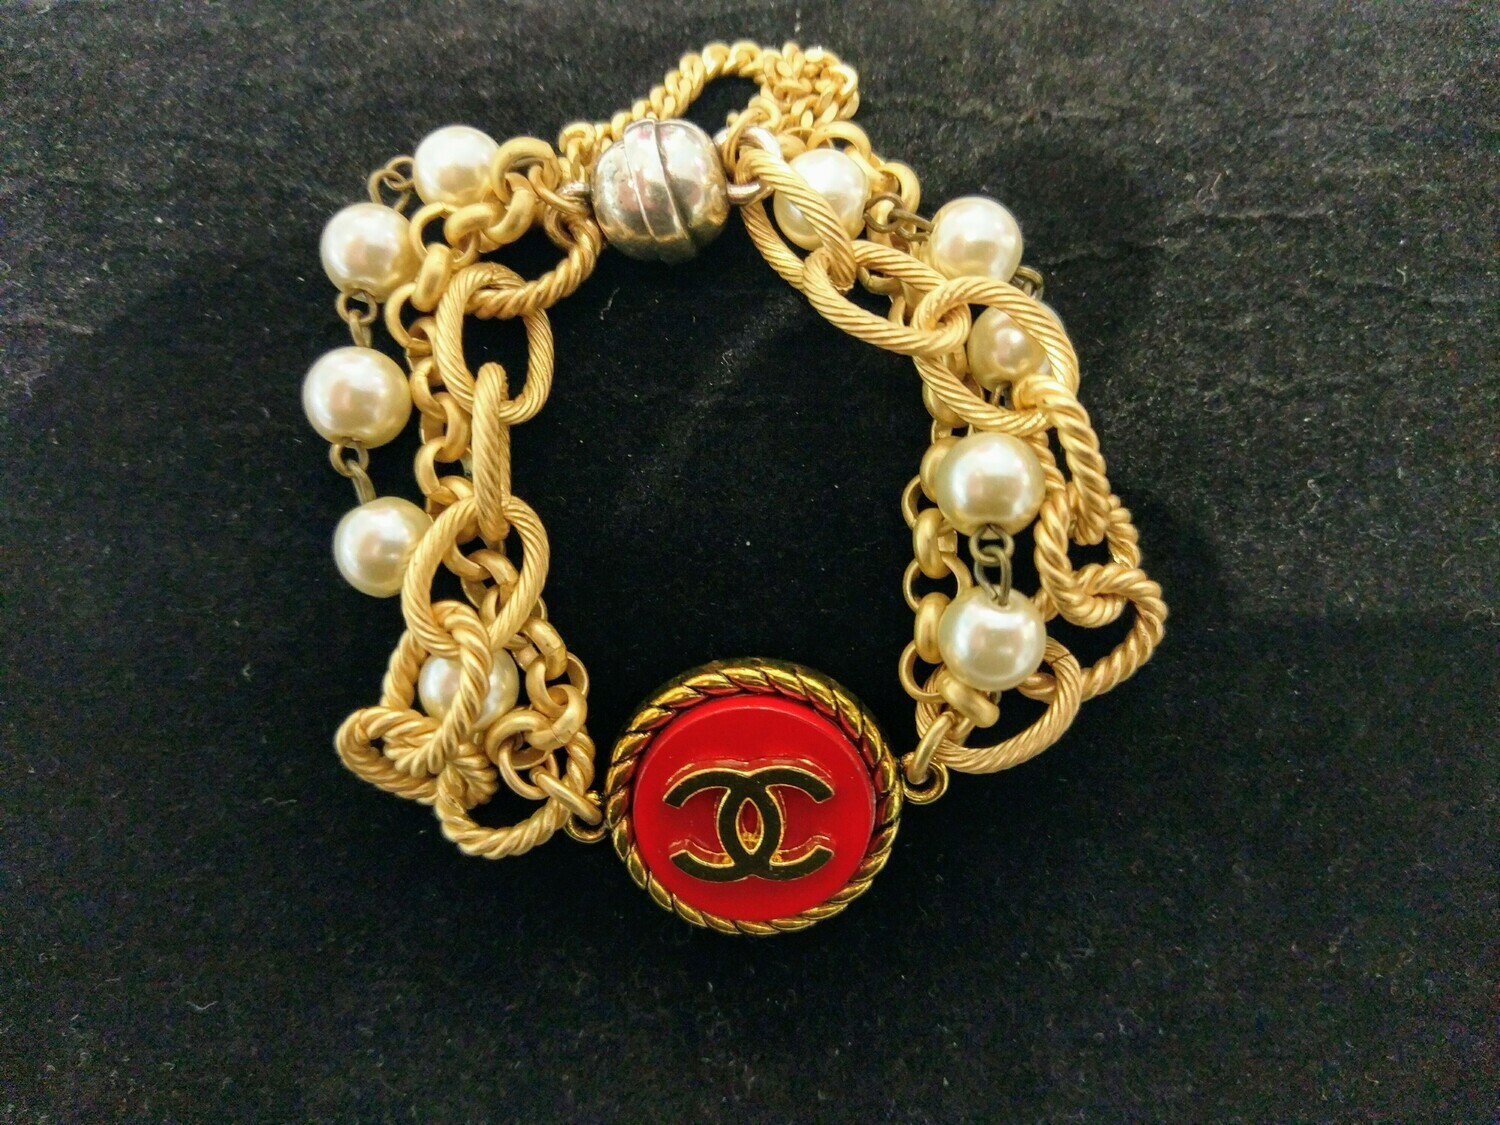 Vintage Chanel  Button Bracelet With Multi-Strands And Red Button